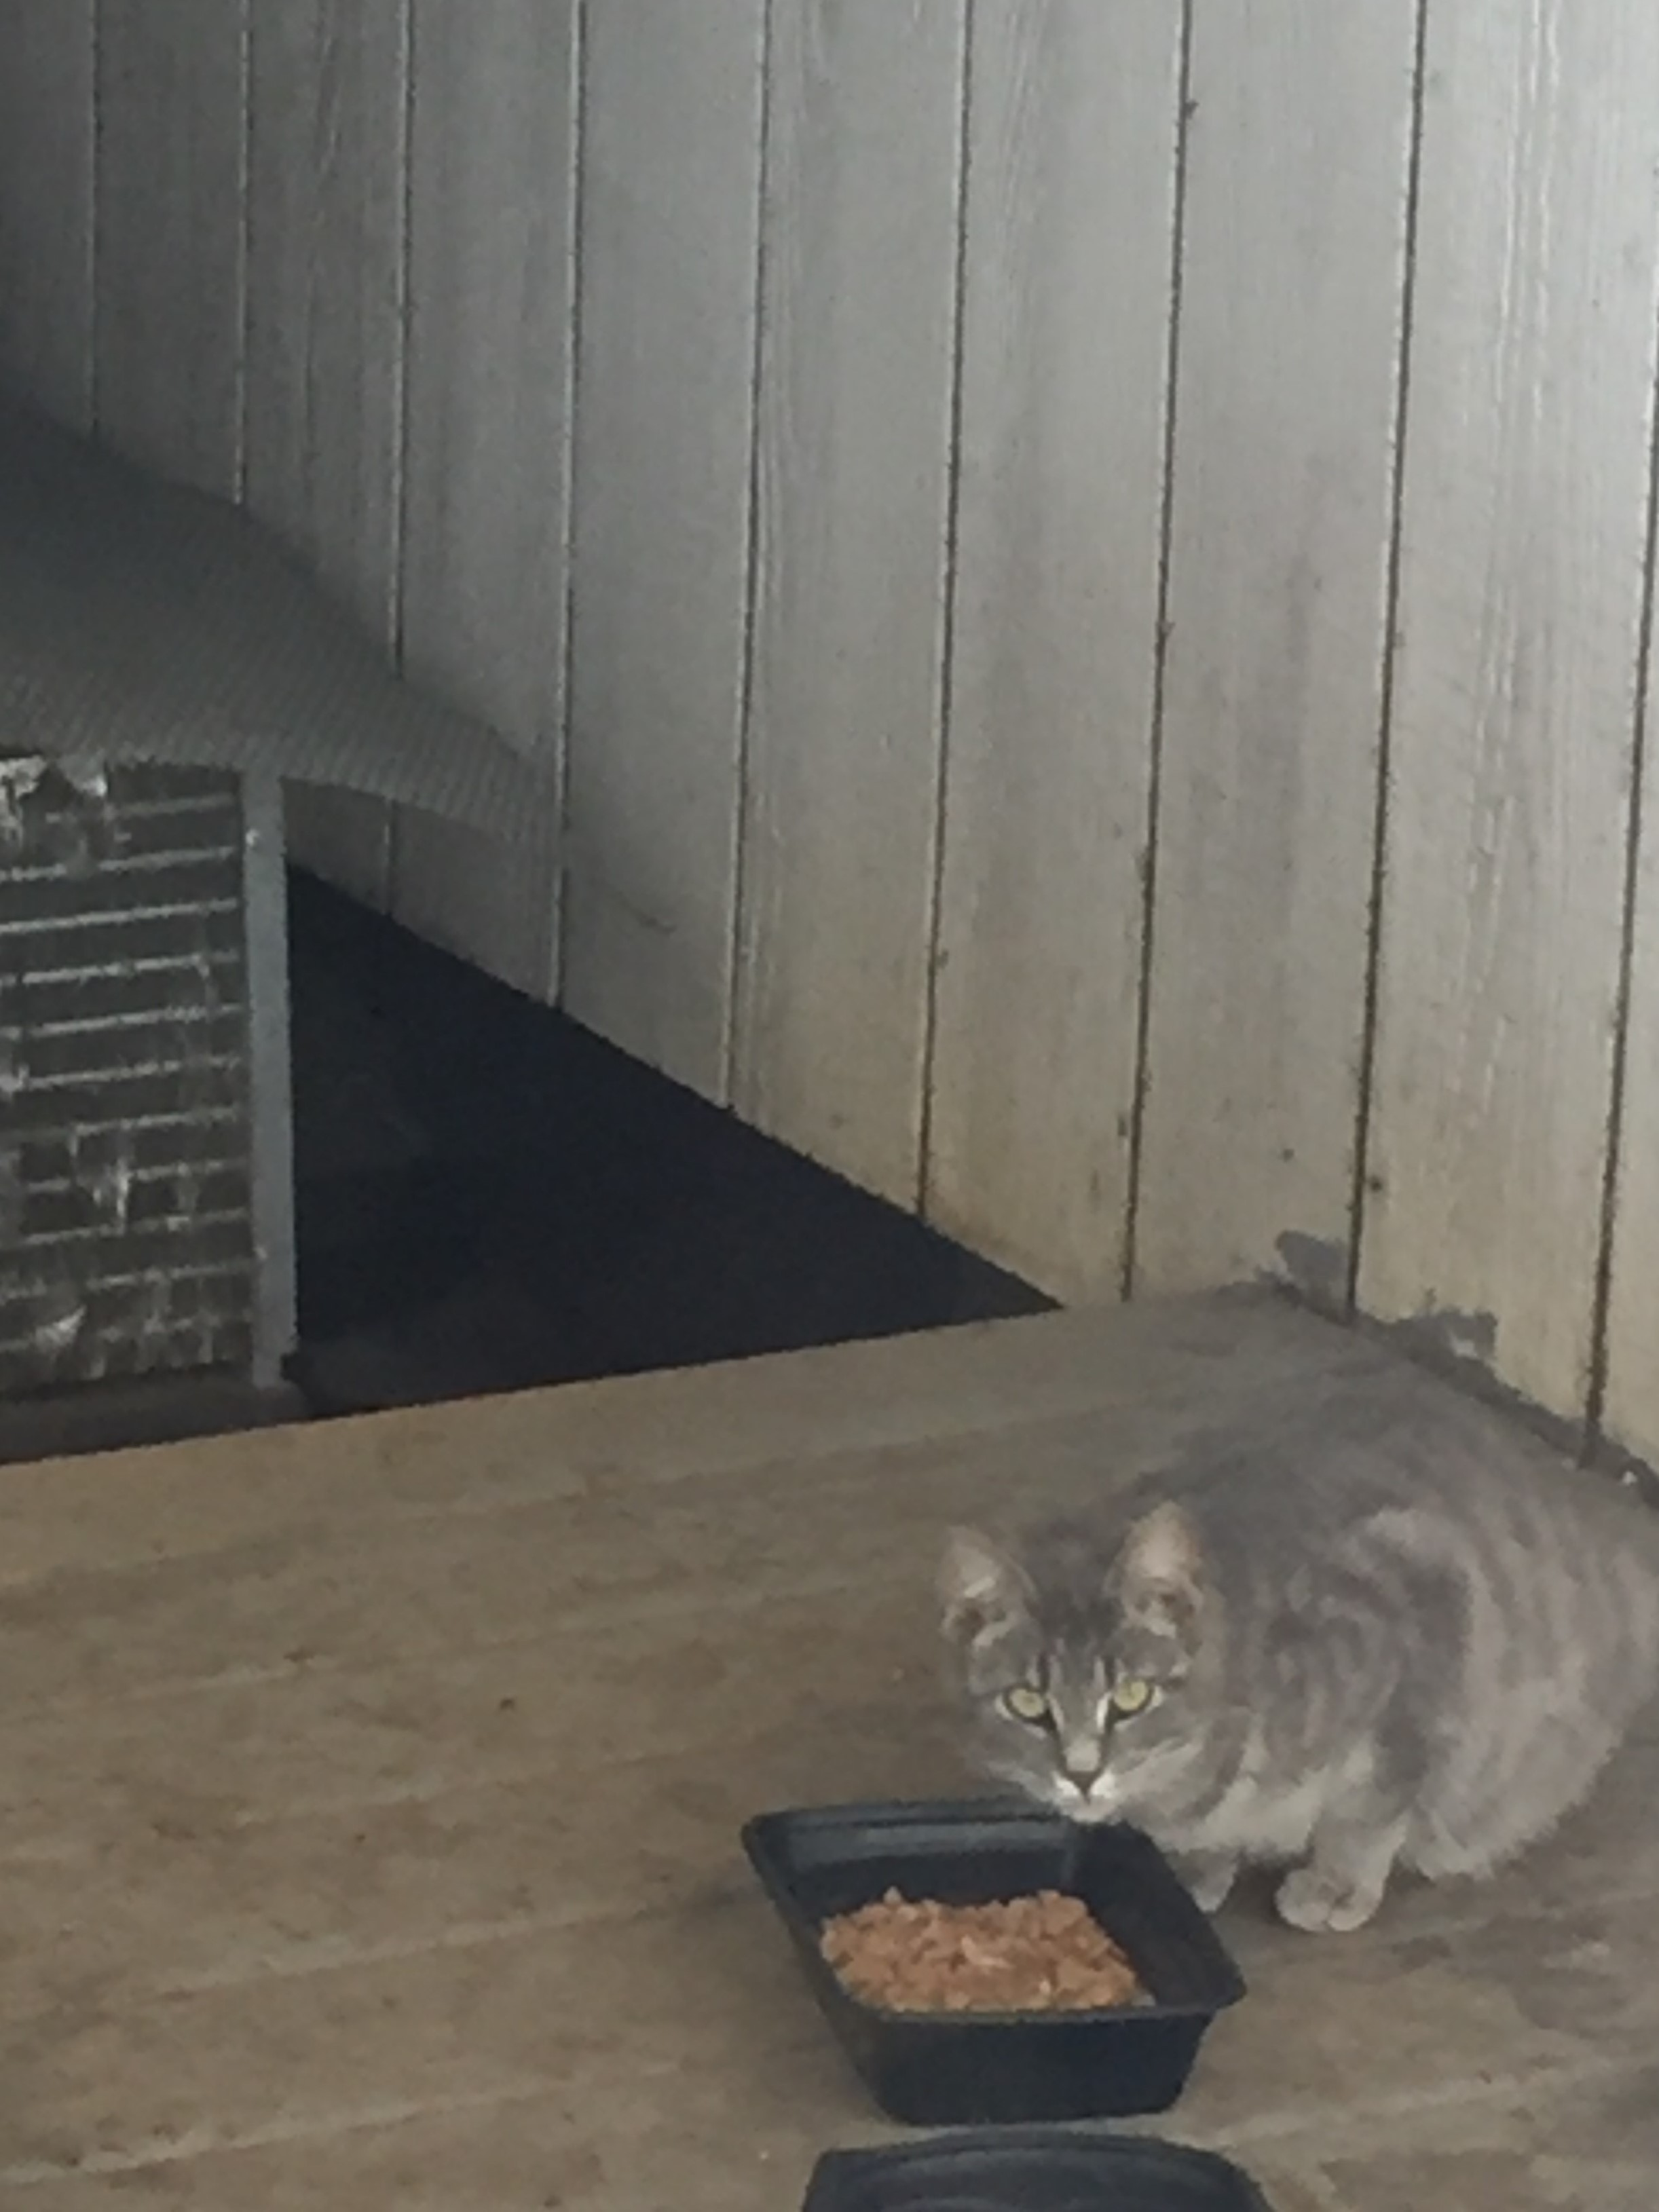 Cuddles the cat about to eat from food bowl